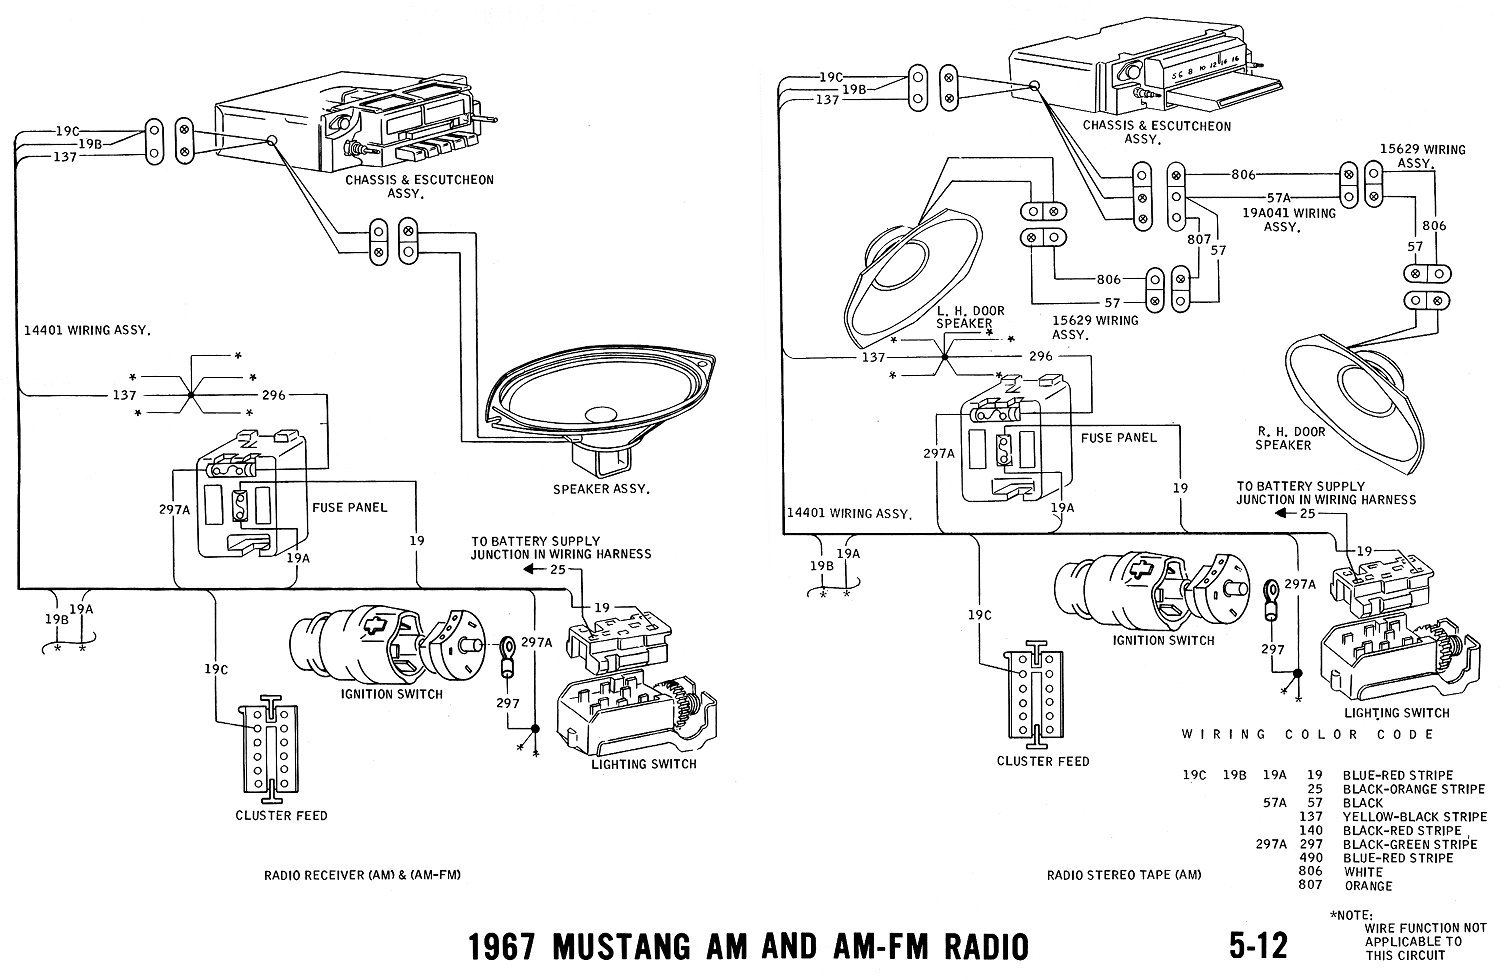 67 Camaro Windshield Wiper Motor Wiring Diagram